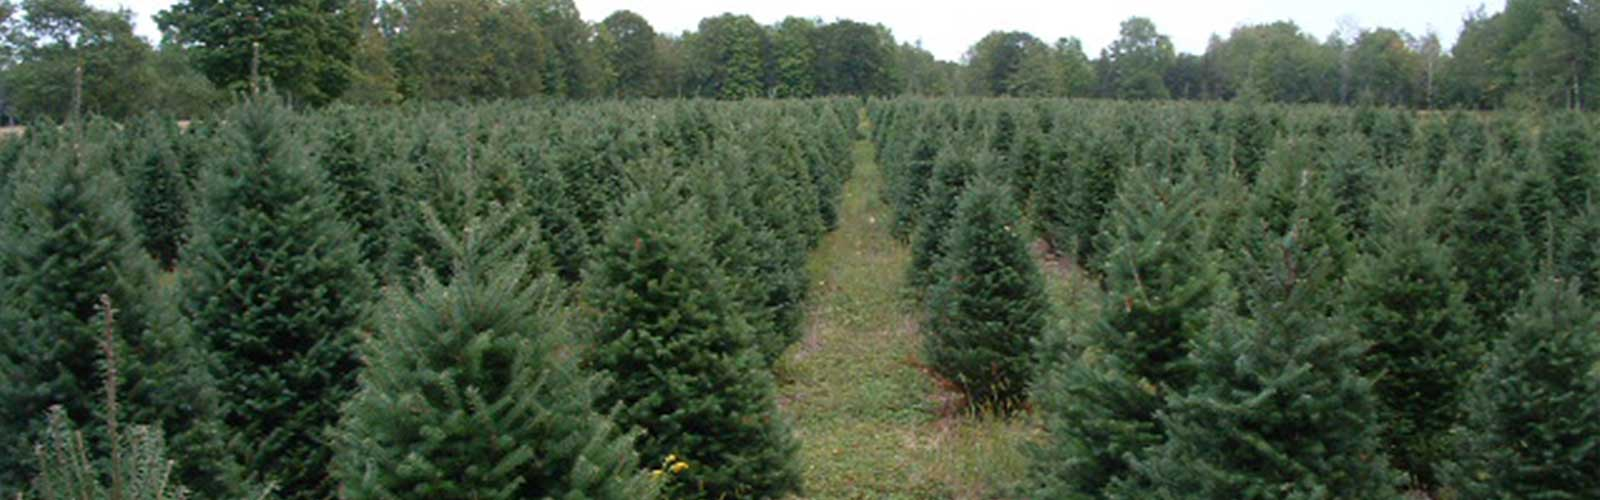 We offer Fresh Christmas Trees of all varieties, including Balsam Fir, Fraser Fir, Canaan Fir, Spruces and Pines.